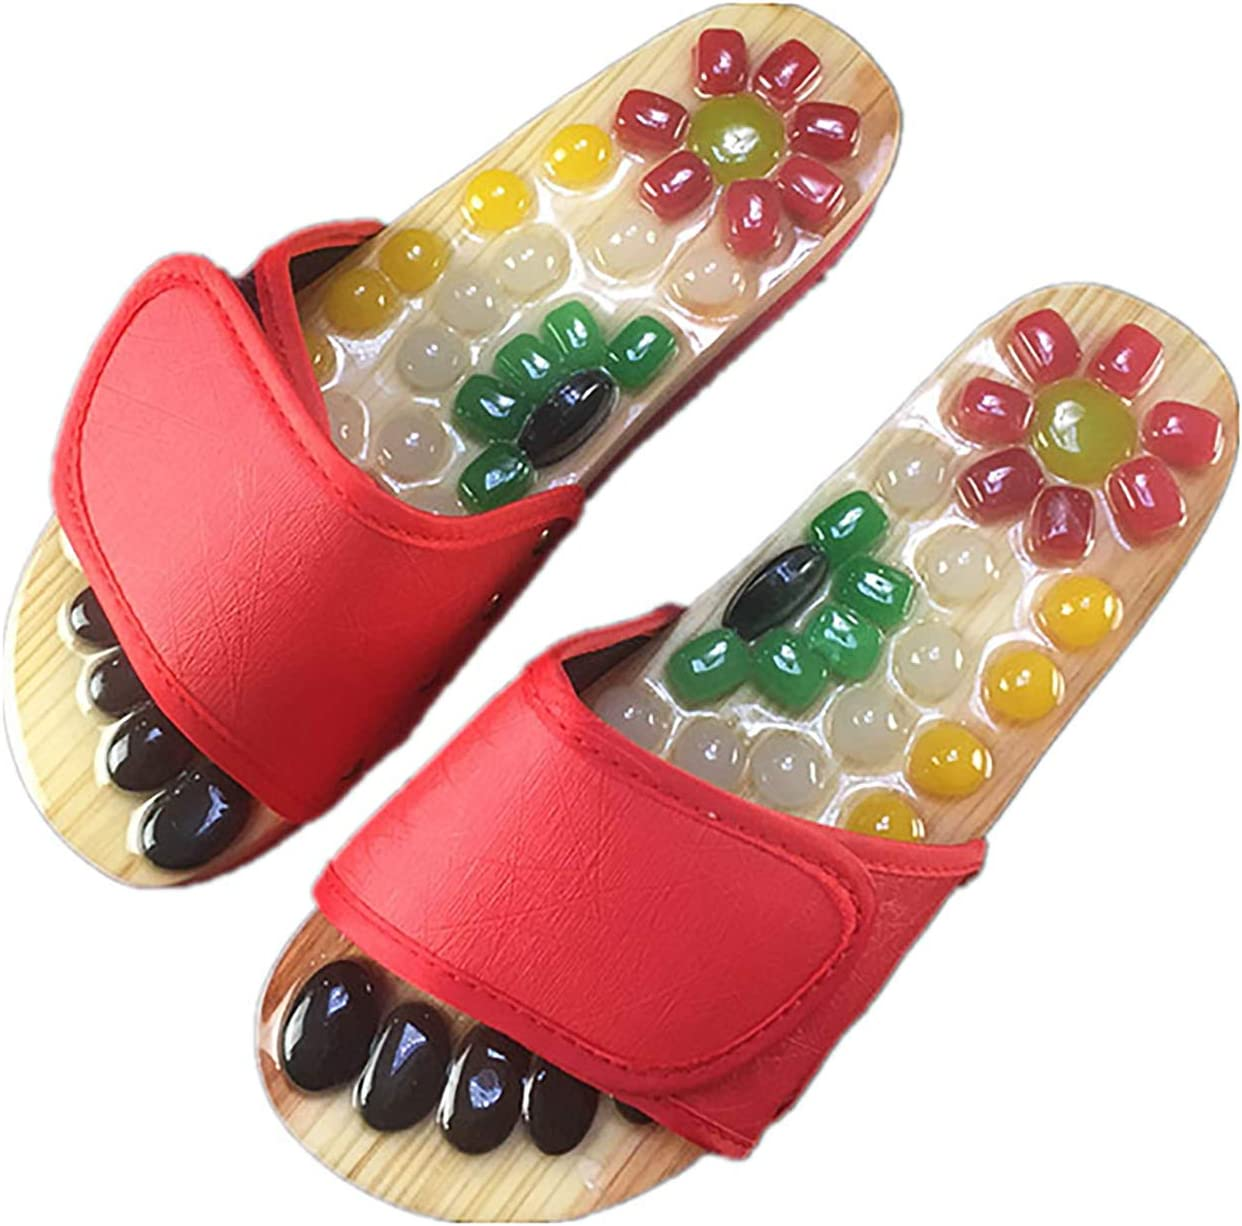 AW-SJ Foot Acupoint Massage Shoes Cobblestone Slippers Popular brand in NEW the world